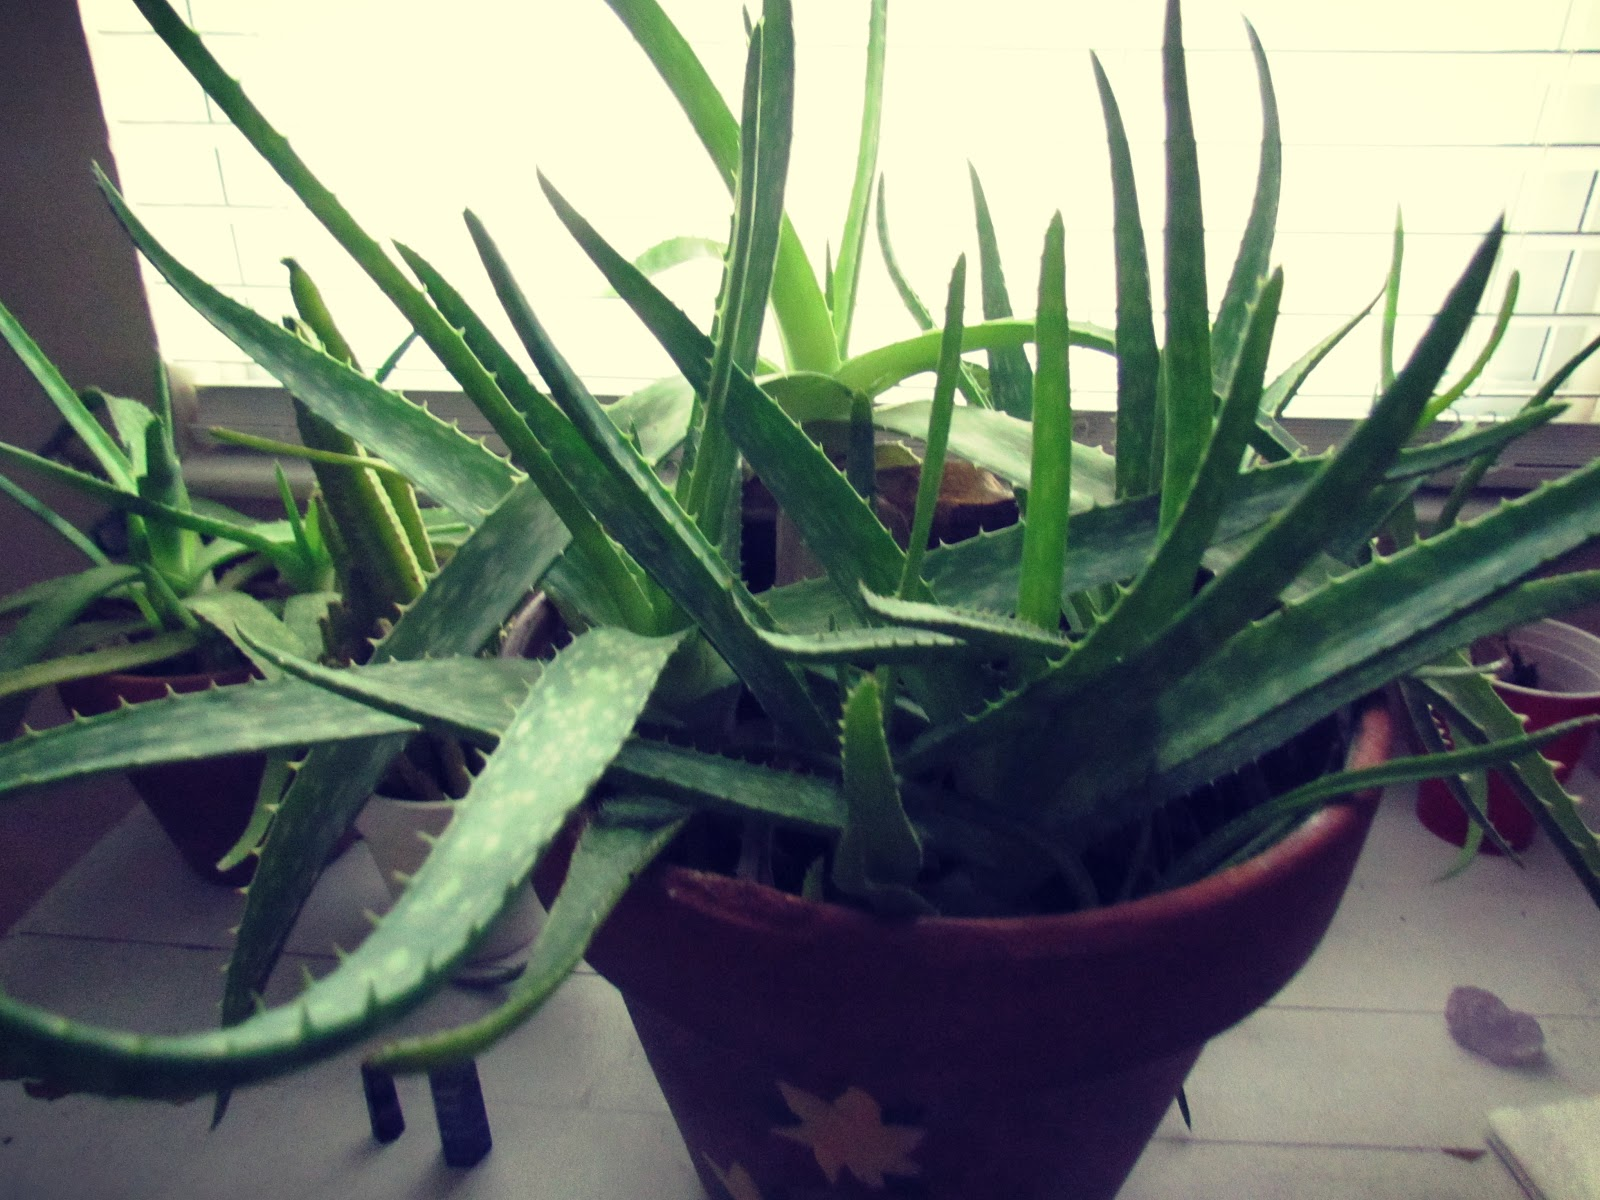 Green Plant Life on a Table in the Wintertime + Healing Plant Energy + Green Therapy